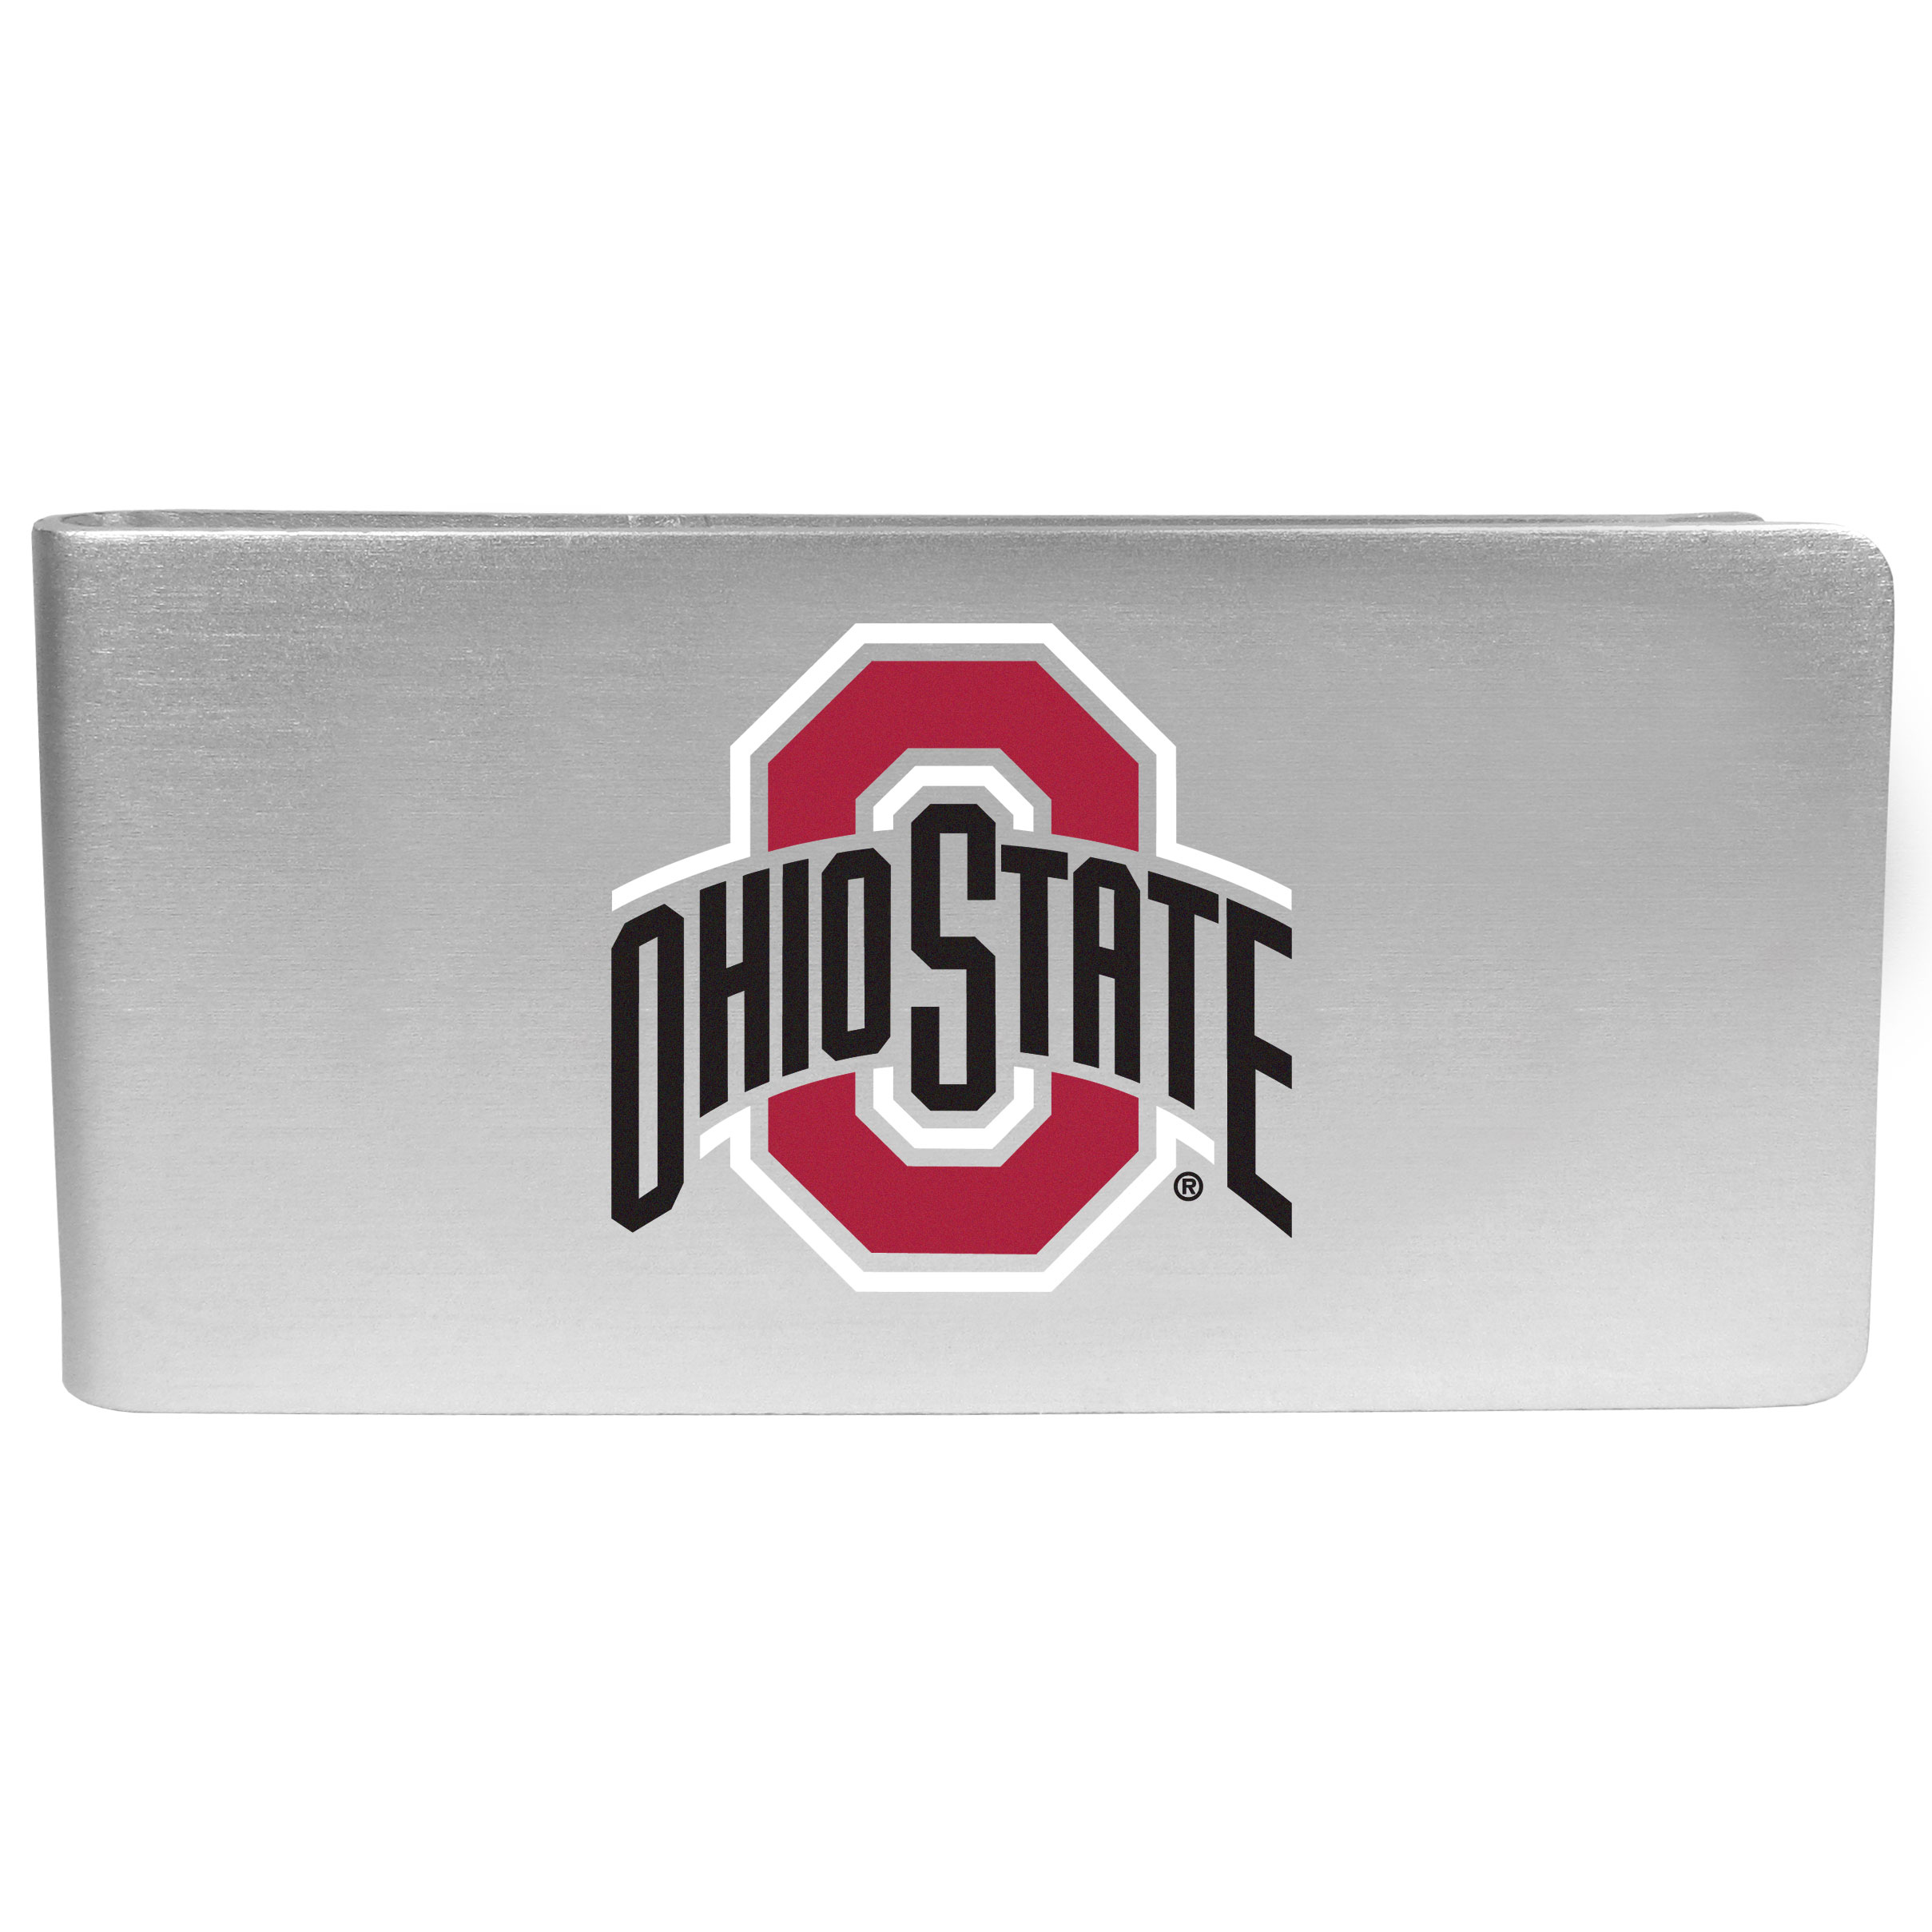 Ohio St. Buckeyes Logo Money Clip - Our brushed metal money clip has classic style and functionality. The attractive clip features the Ohio St. Buckeyes logo expertly printed on front.